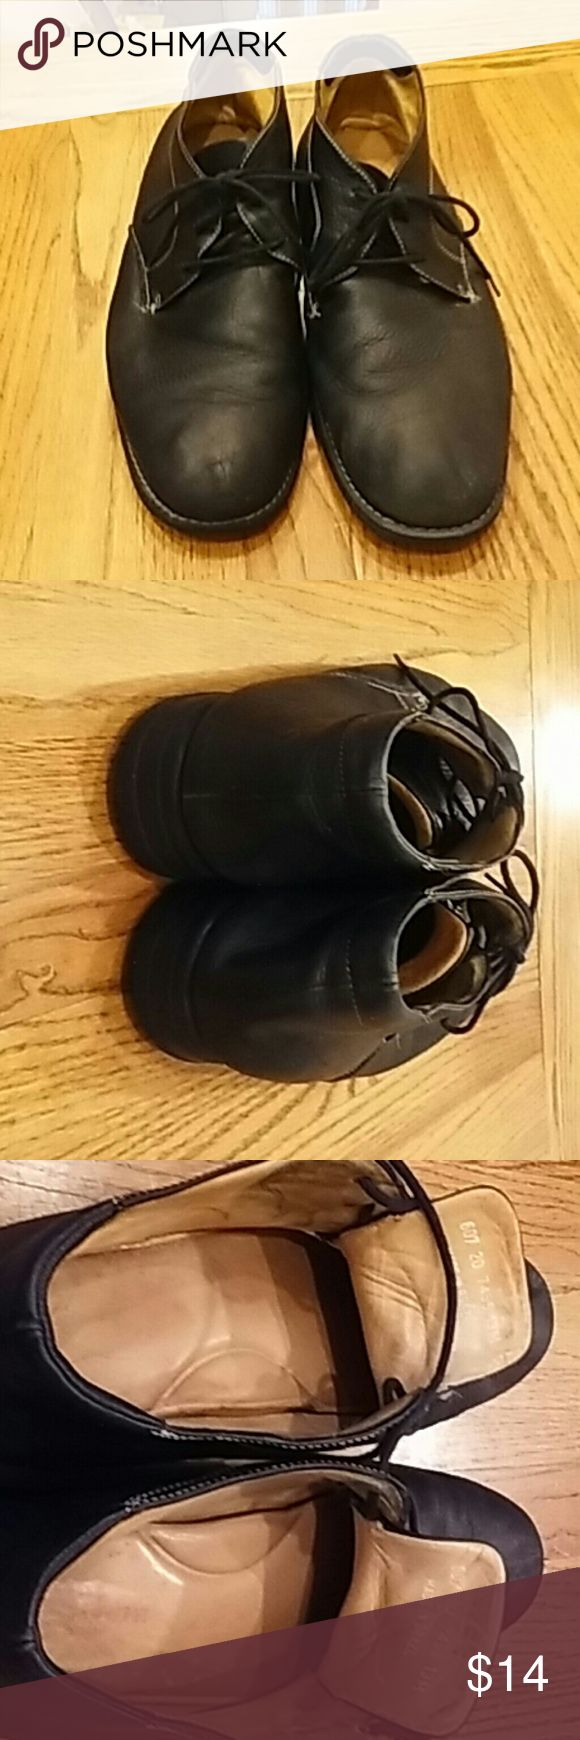 (MENS) Black Chukka Boot Mens Black Casual Chukka Boot.  Worn..Outside of boots in good condition..inside is worn out but not visible when on foot Johnston & Murphy Shoes Chukka Boots